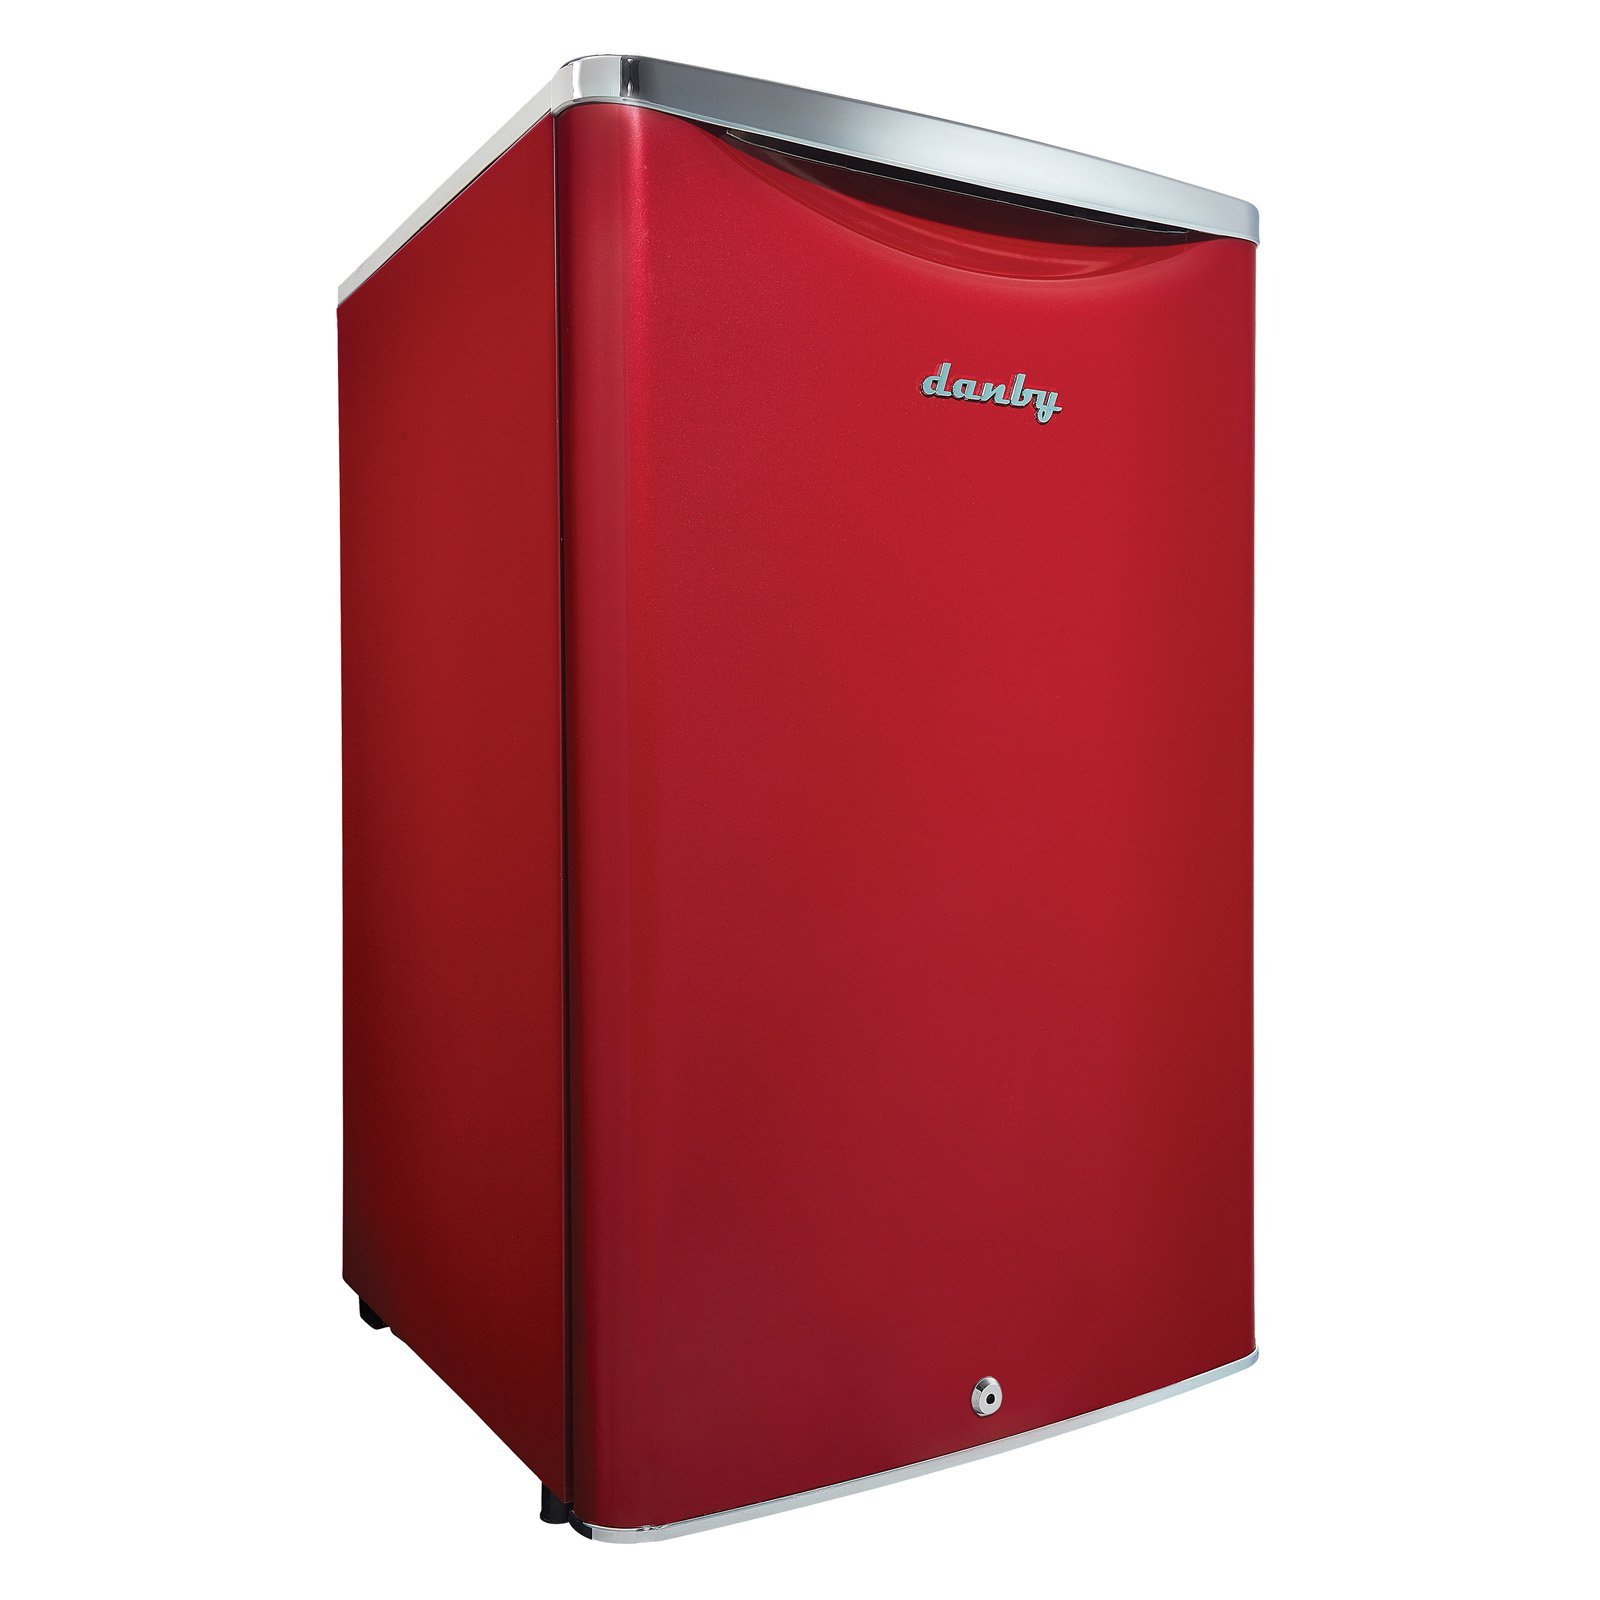 Danby Dar044a6ldb 4 4 Cu Ft Compact Refrigerator Red